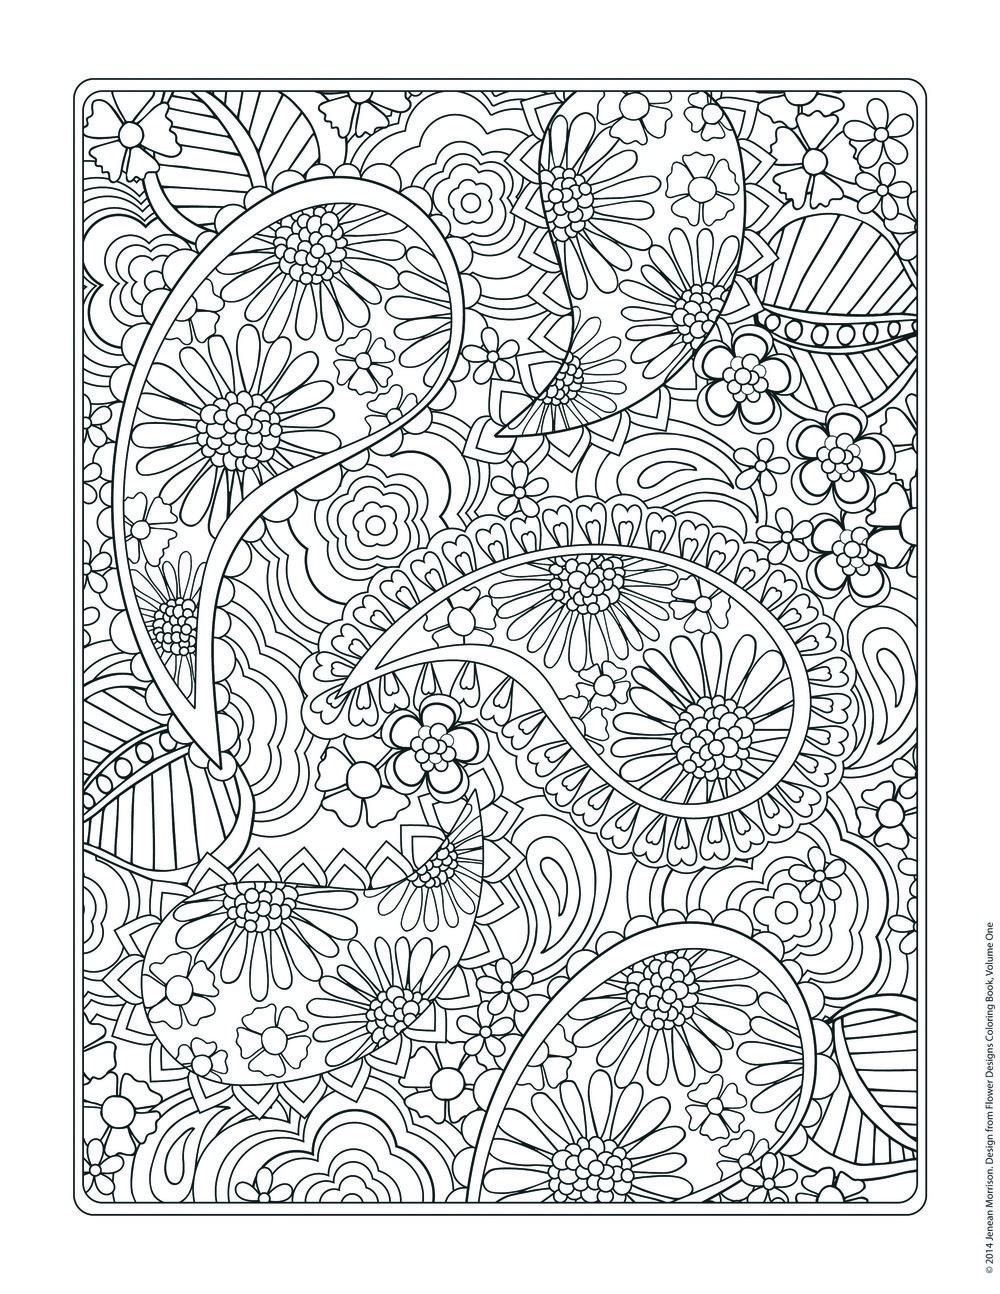 Flower Designs Coloring Book | Flower Designs, Coloring Books And regarding Detailed Flower Pattern Coloring Pages 27079